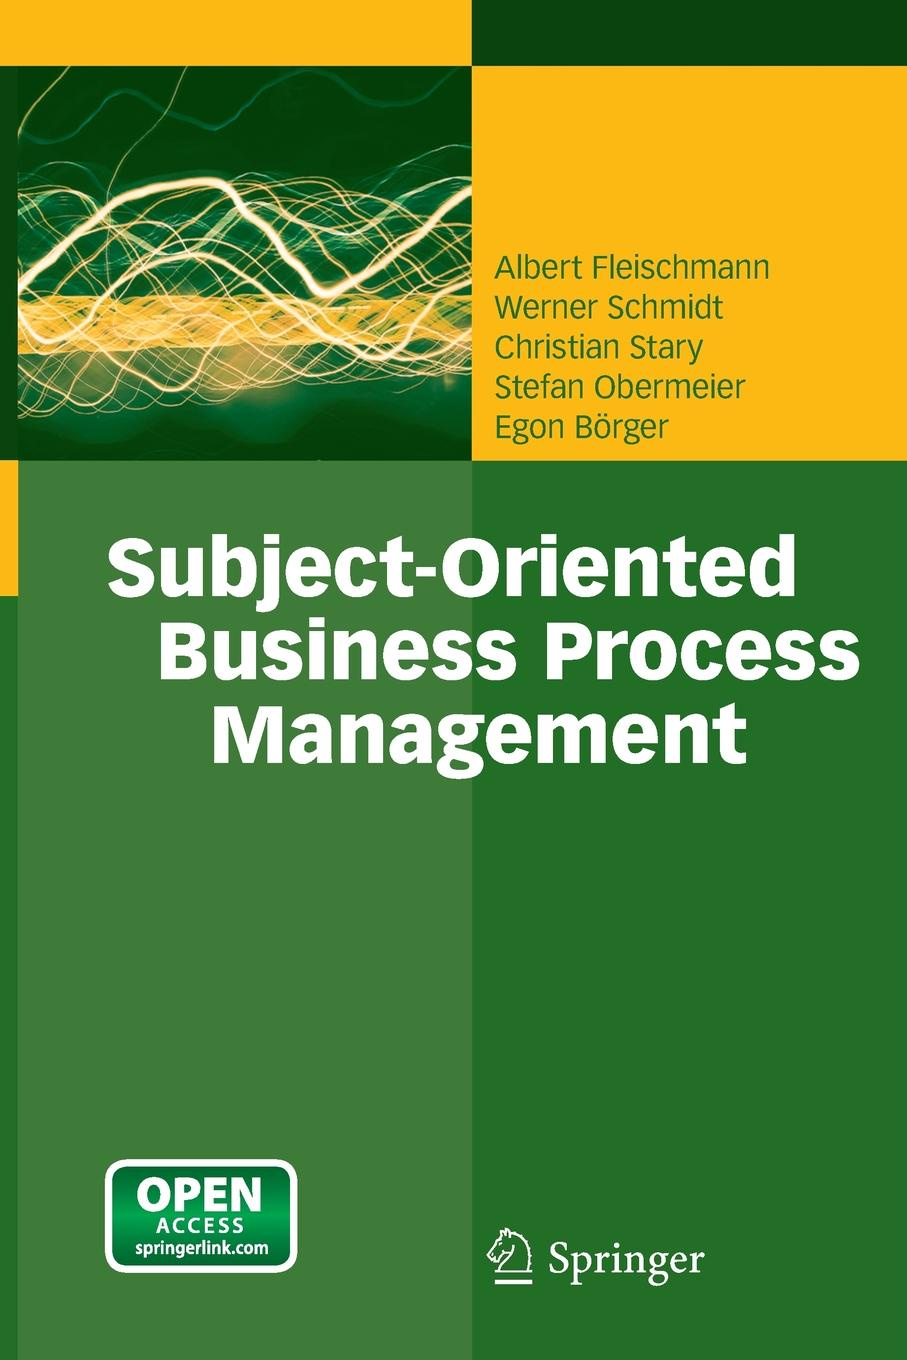 лучшая цена Albert Fleischmann, Werner Schmidt, Christian Stary Subject-Oriented Business Process Management